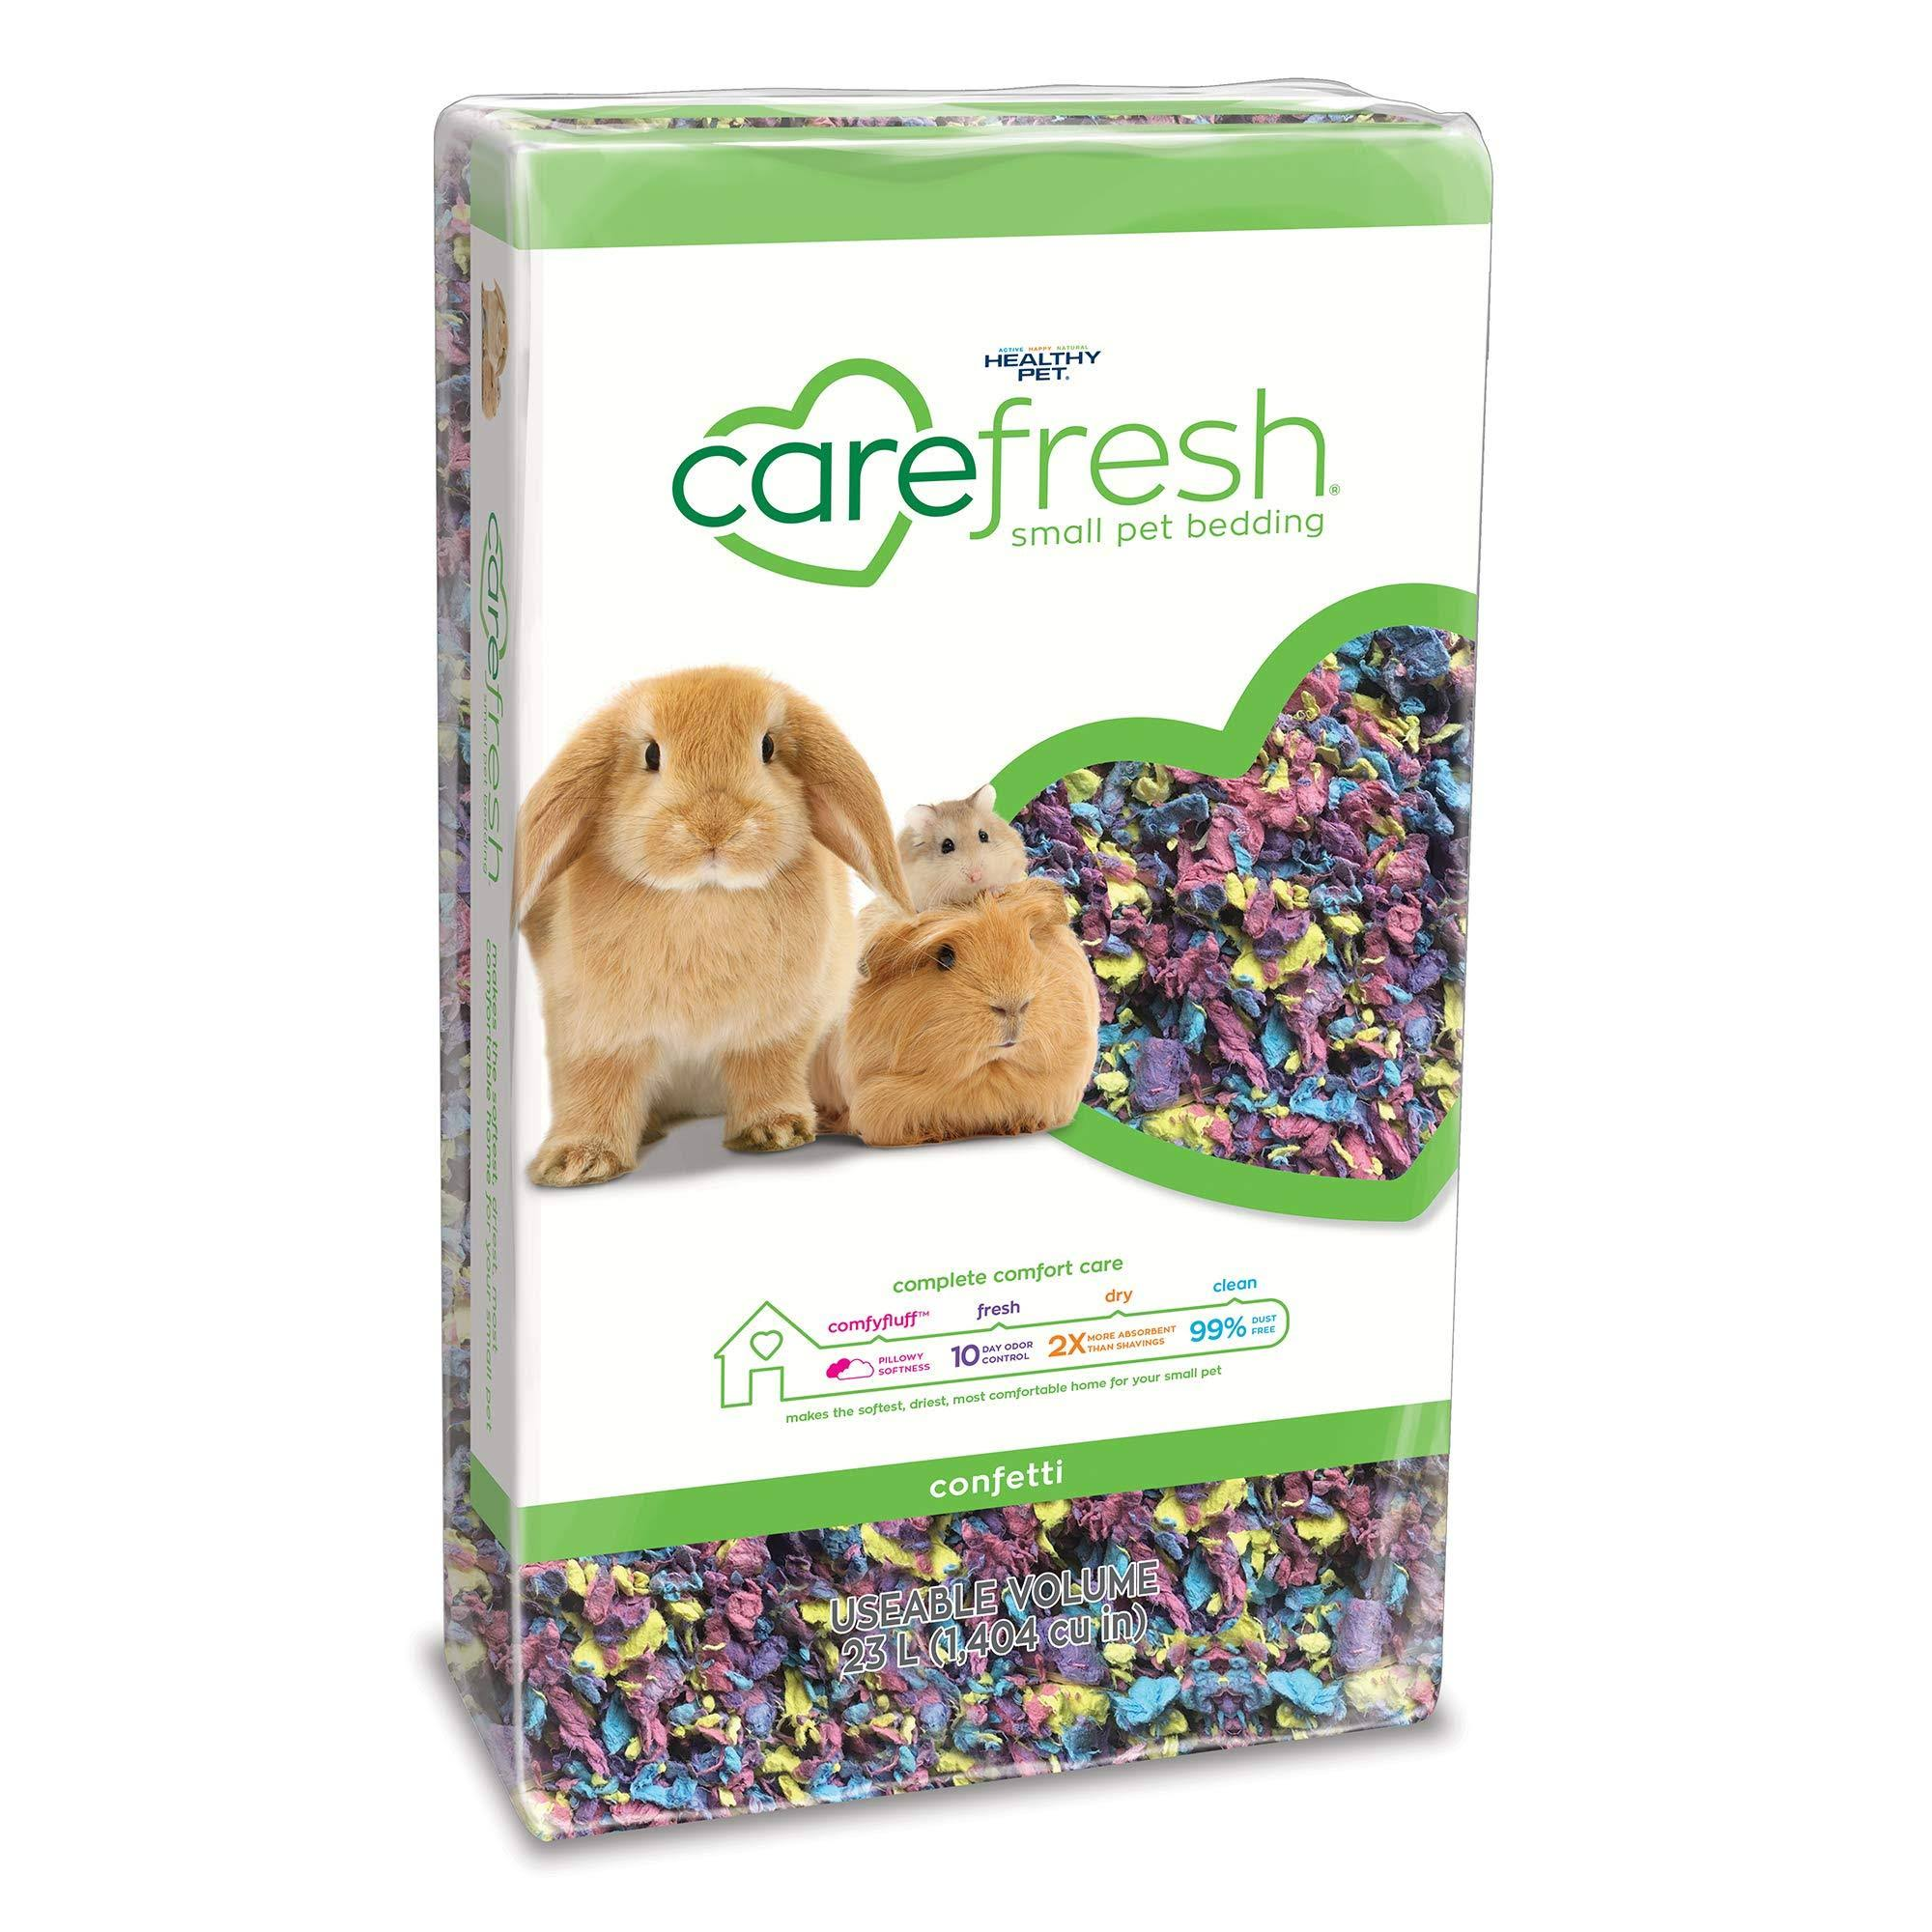 Carefresh Confetti Soft Pet Bedding